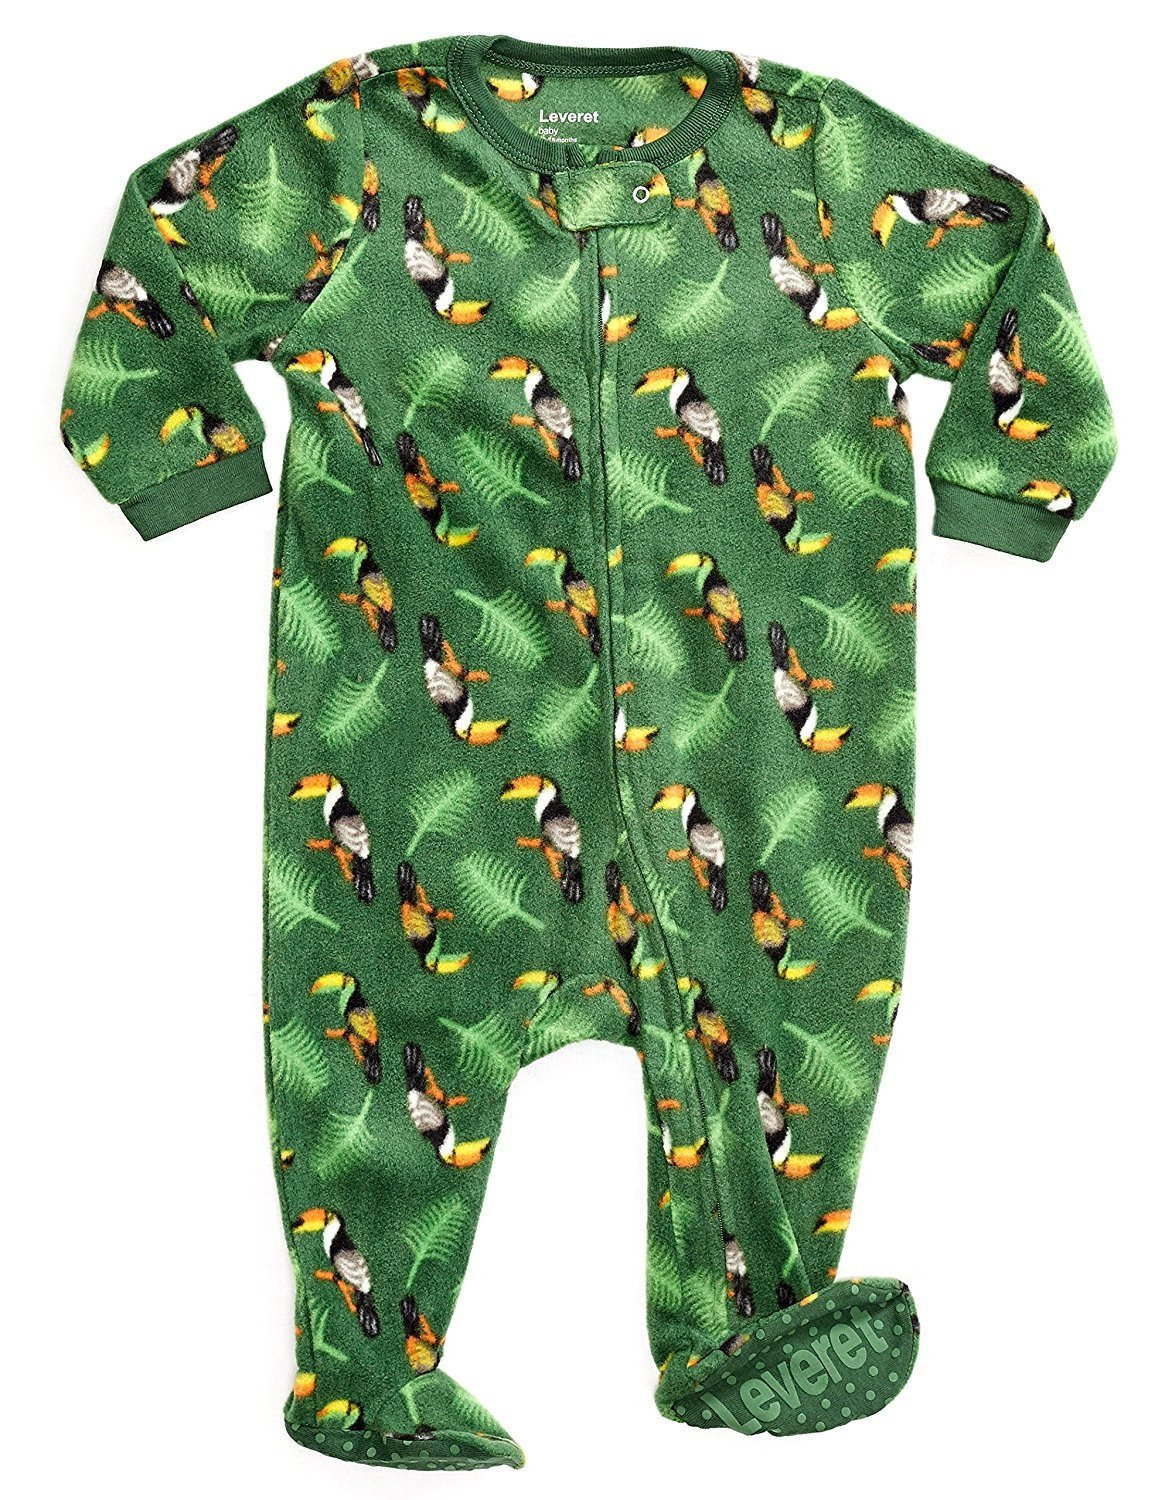 Leveret Baby Boys Sharks Footed Sleeper Pajama 100/% Cotton Size 6M-5Y